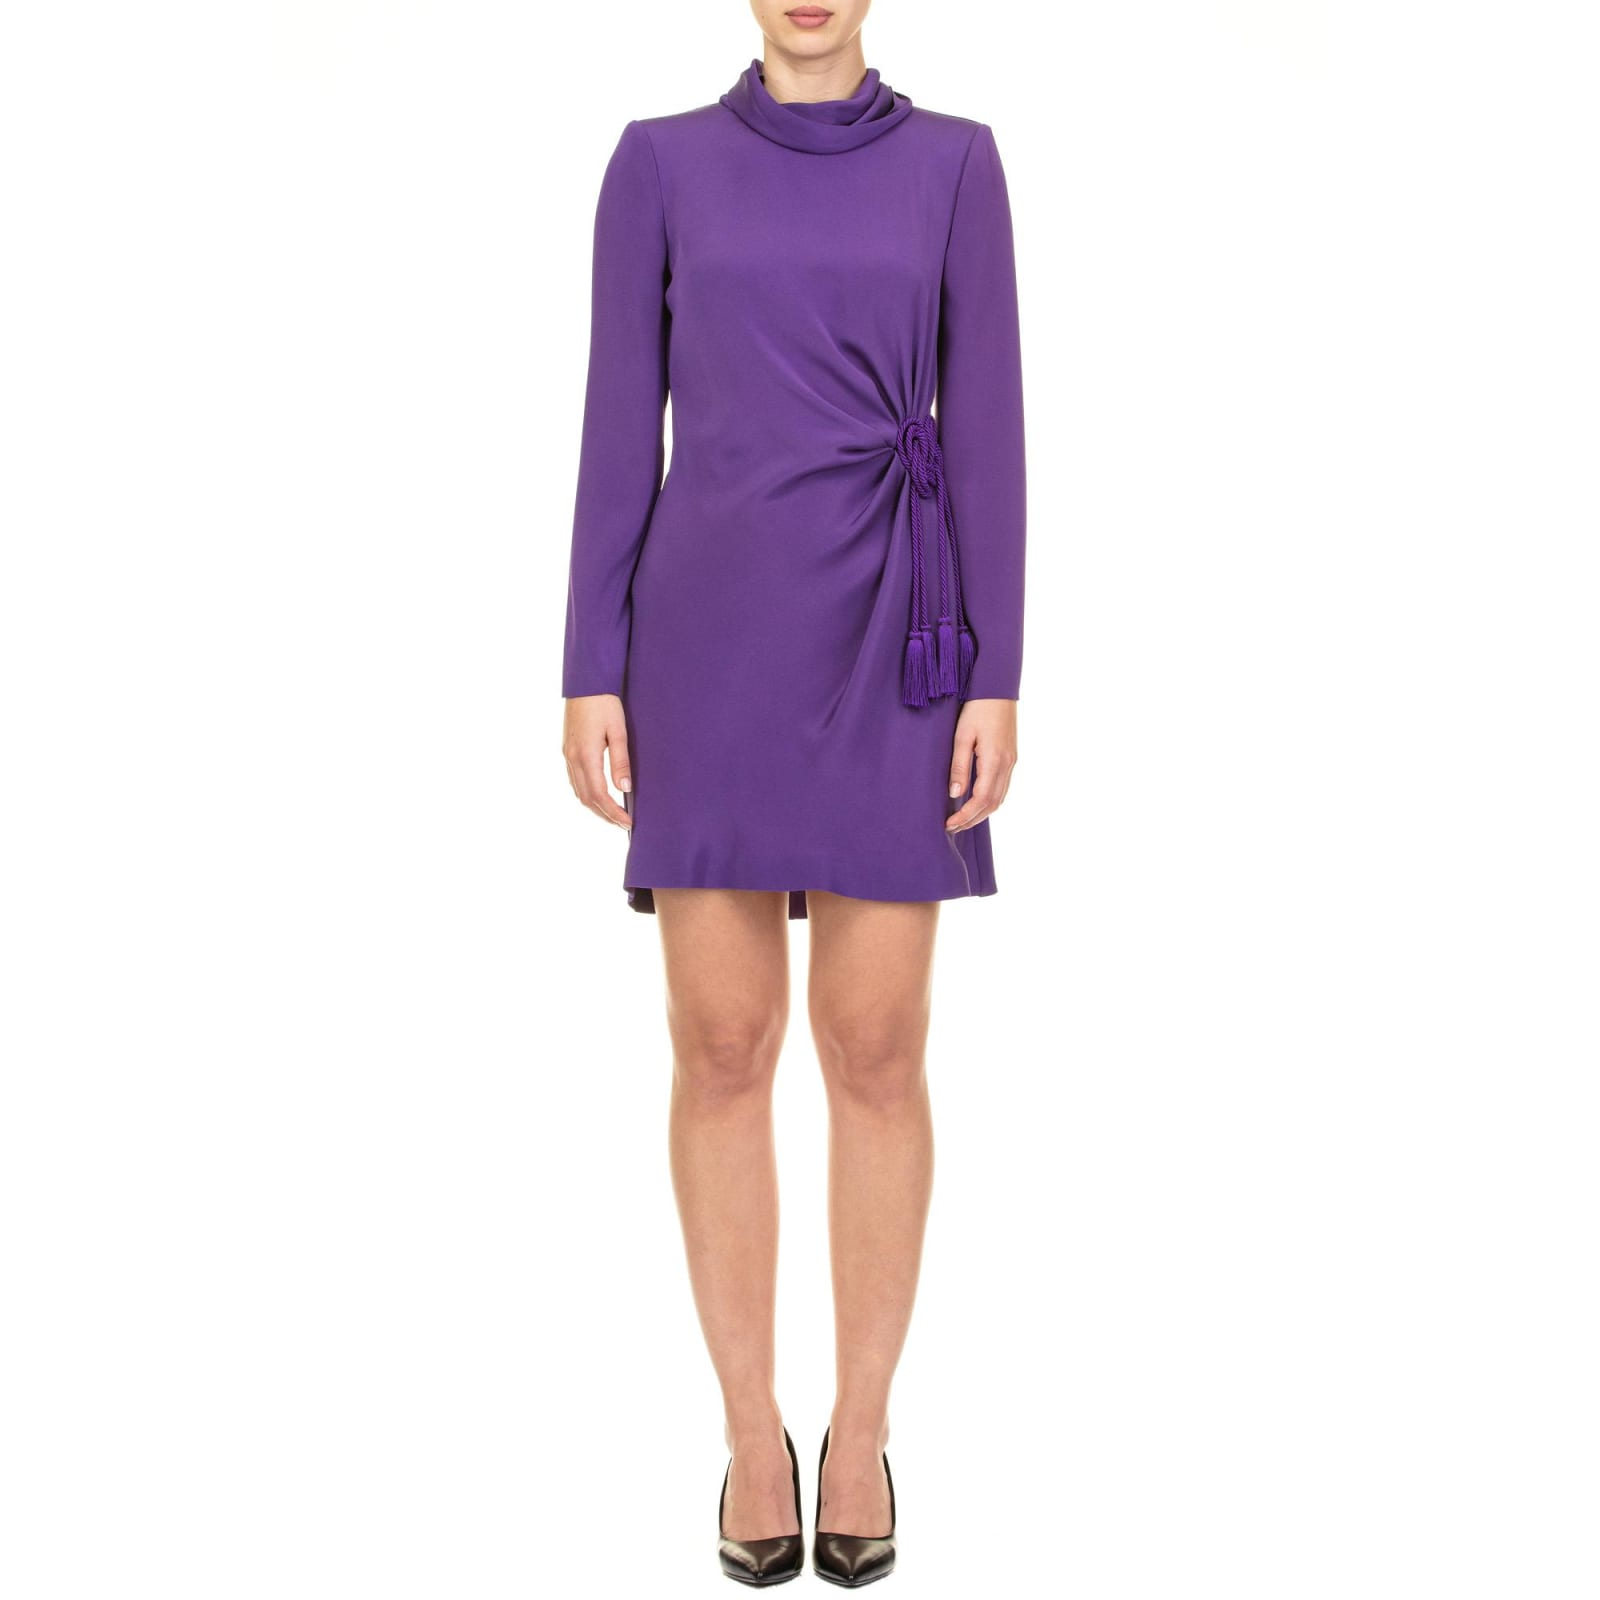 Alberta Ferretti Crepe Dress